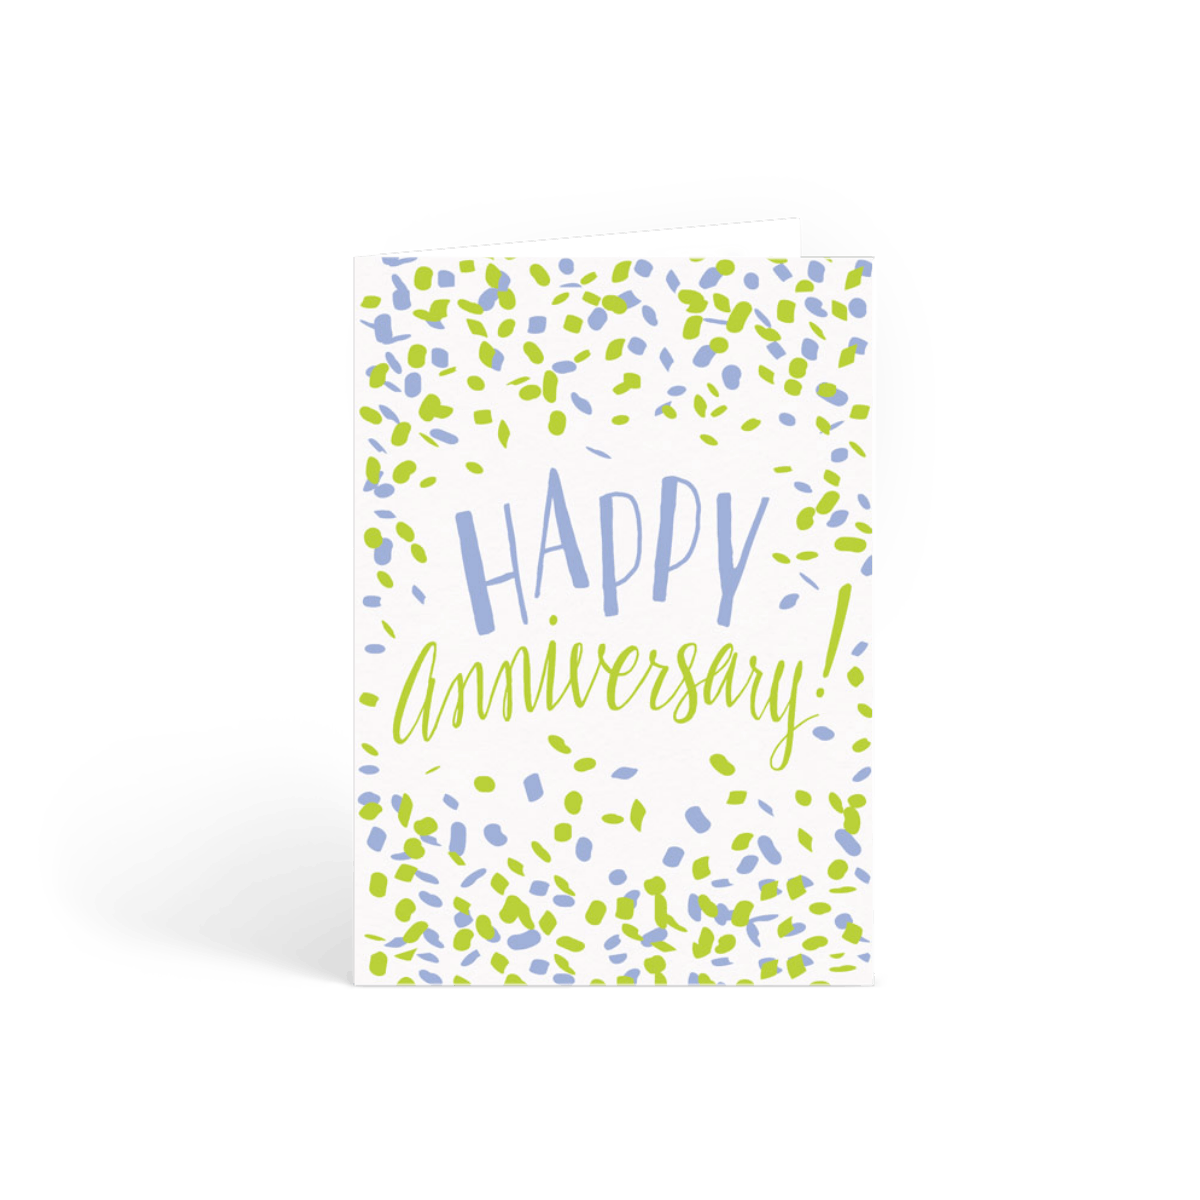 Https%3a%2f%2fwww.papier.com%2fproduct image%2f5062%2f2%2fhappy anniversary confetti 1317 front 1458143143.png?ixlib=rb 1.1